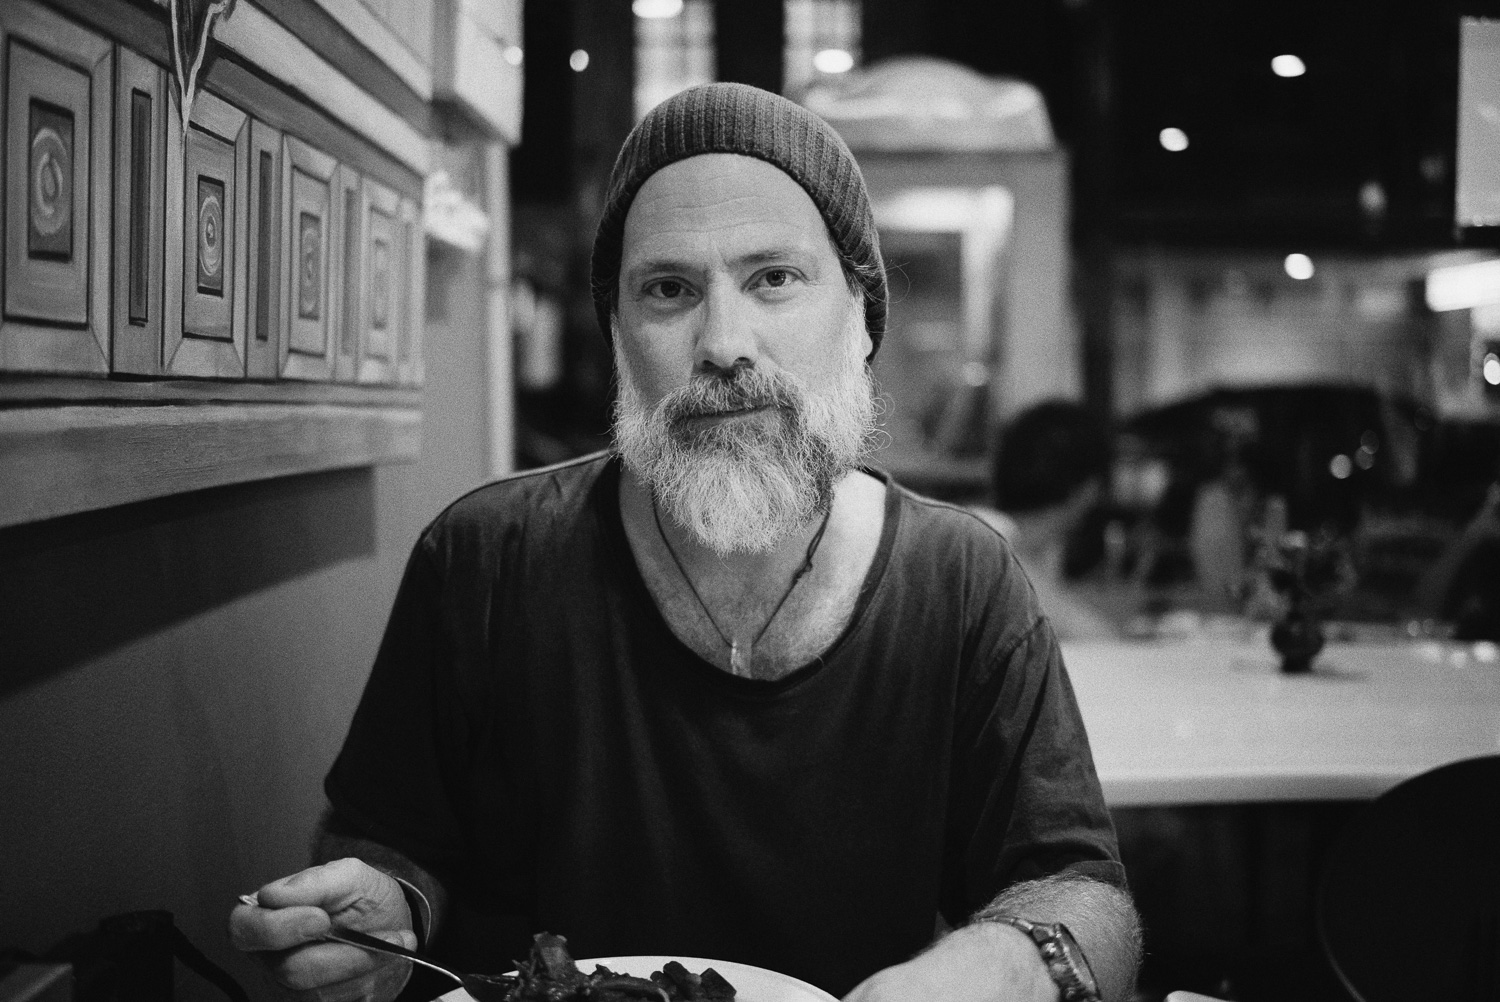 Indian Kitchen, portrait of Simon with my new Voigtlander 35mm f/1.7 Ultron Aspherical lens. Goodbye Leica Summarit, it's been awesome.